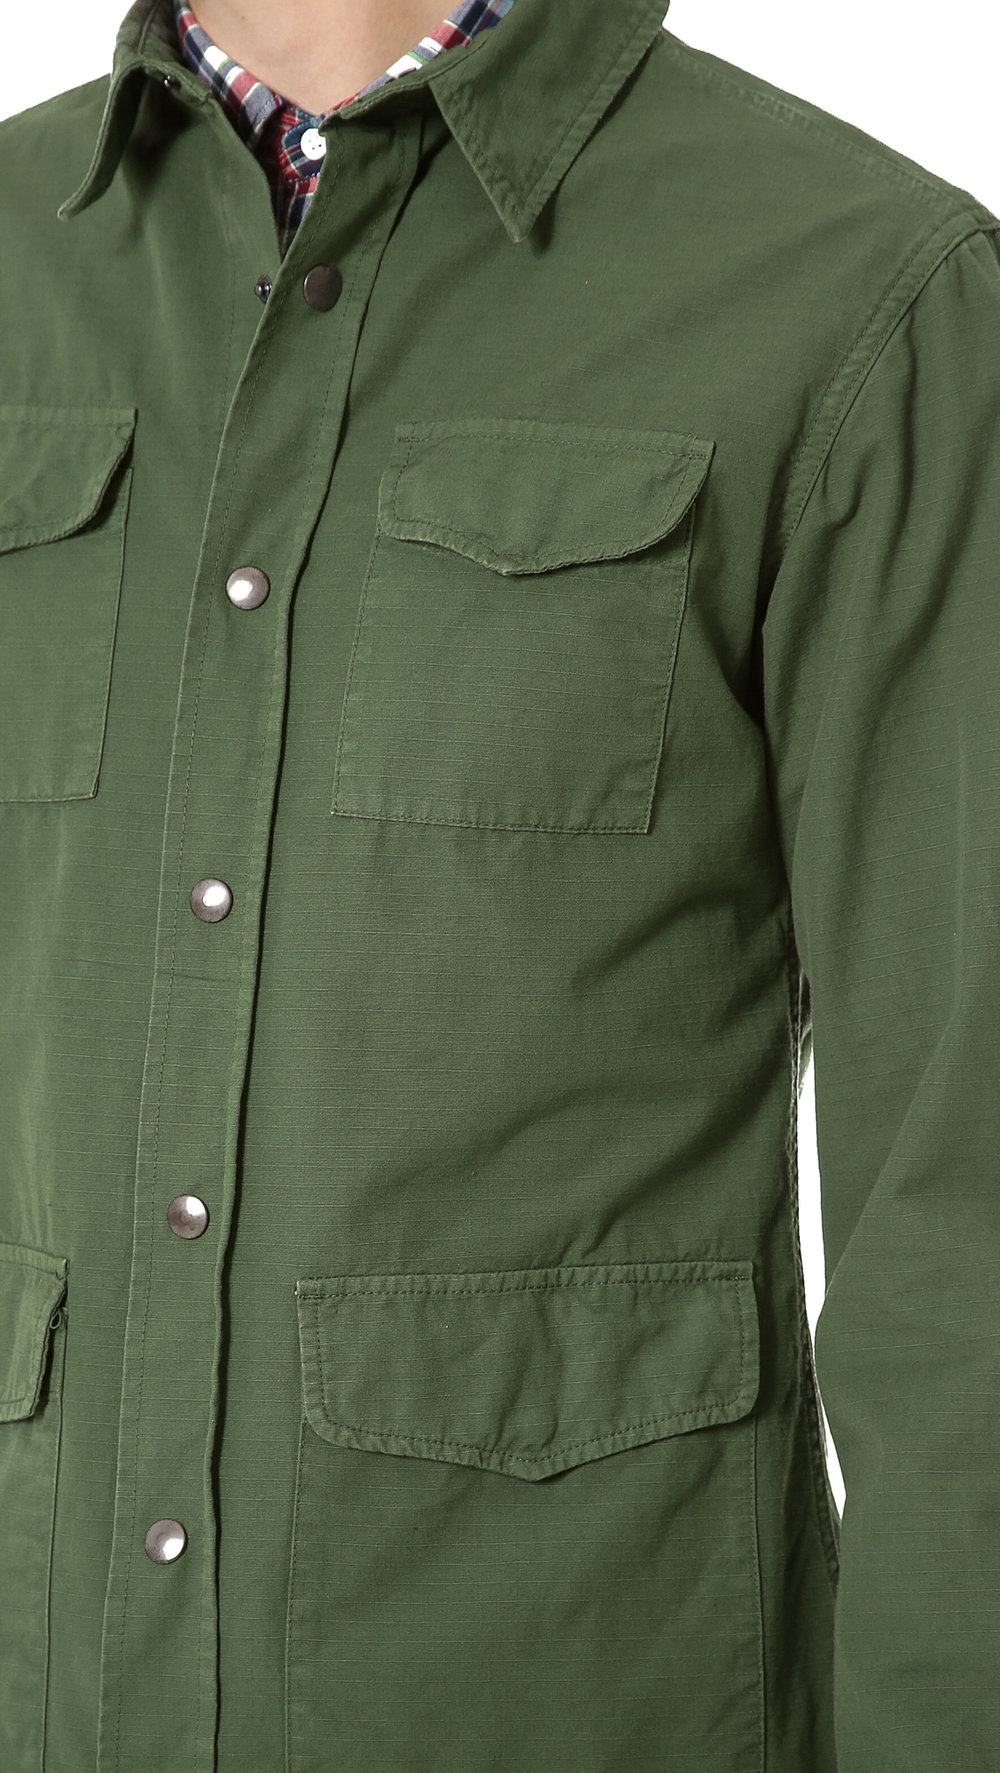 aspesi-green-vietnam-shirt-jacket-product-1-17960831-0-166459795-normal.jpeg